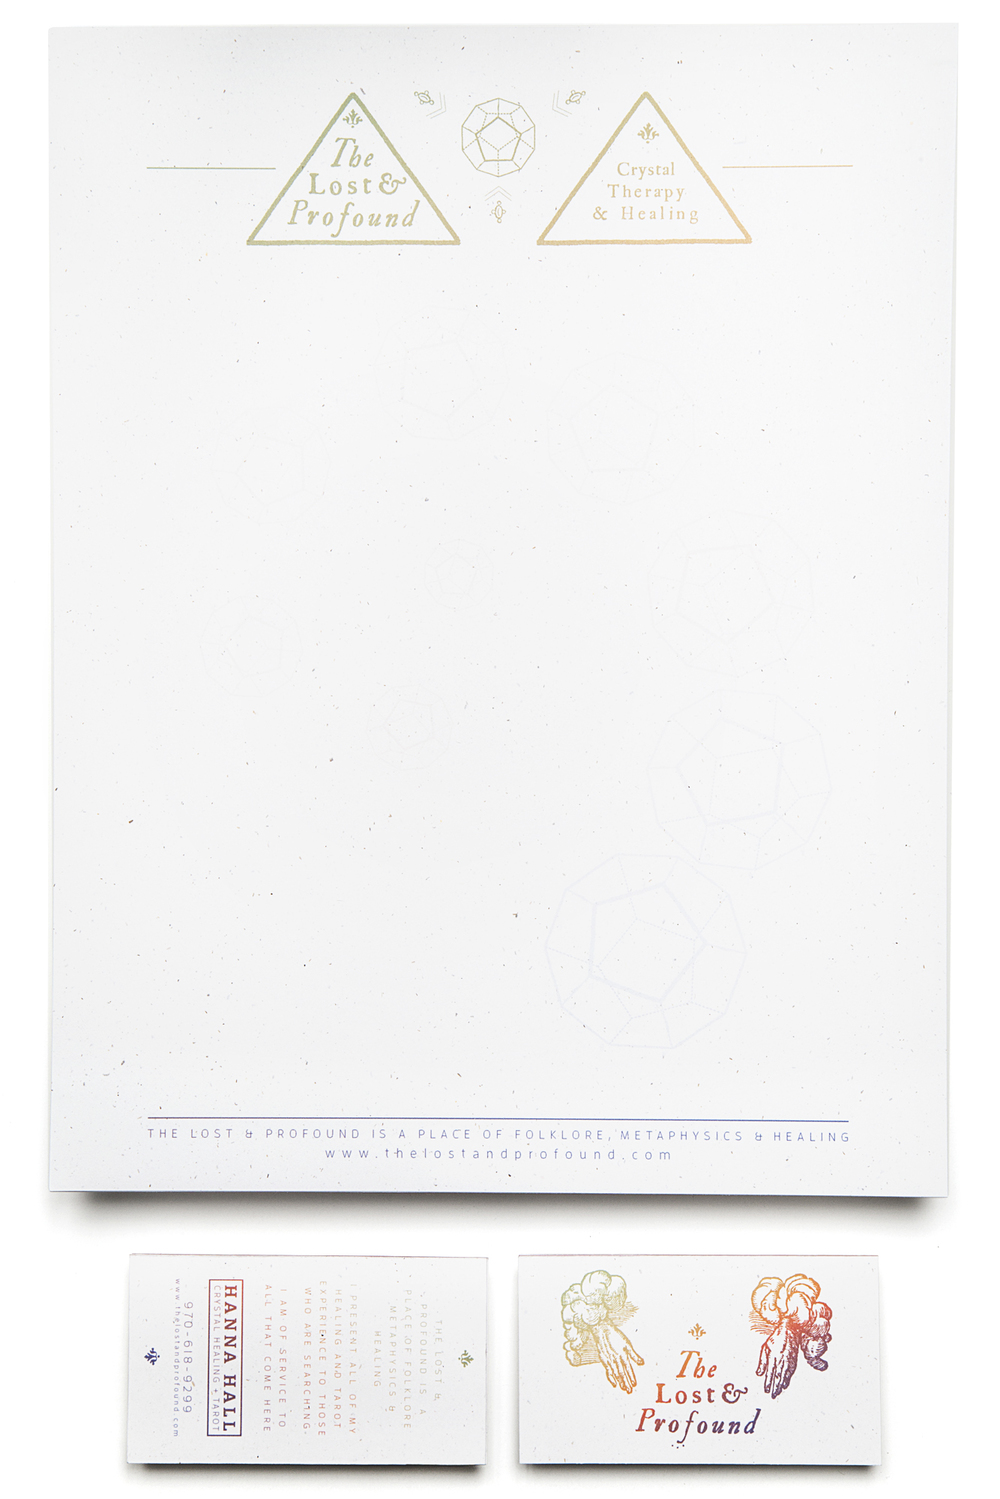 The Lost & Profound Letterhead